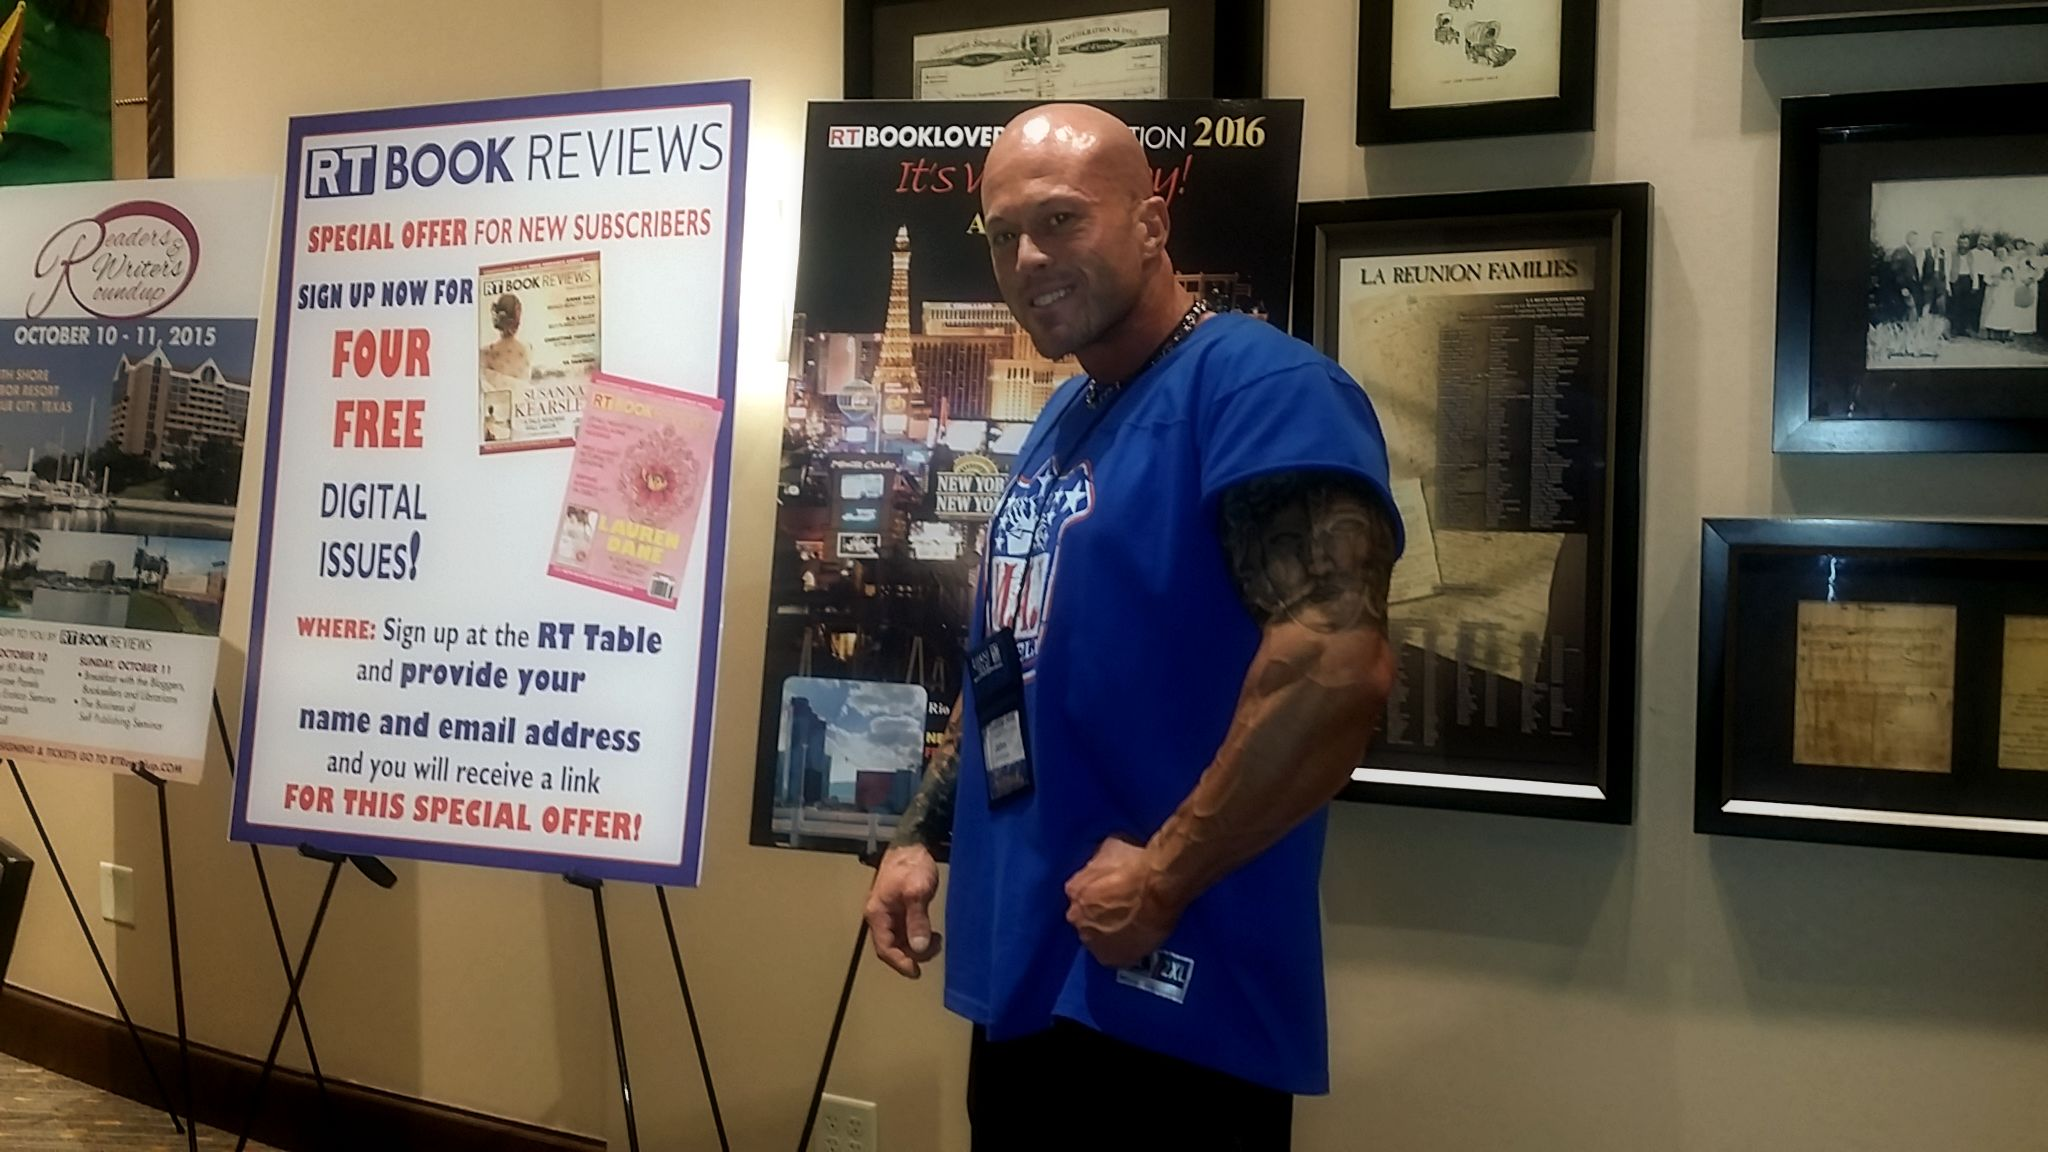 2015 RT Convention Dallas Texas Featured Cover Model John Joseph Quinlan #JohnQuinlan